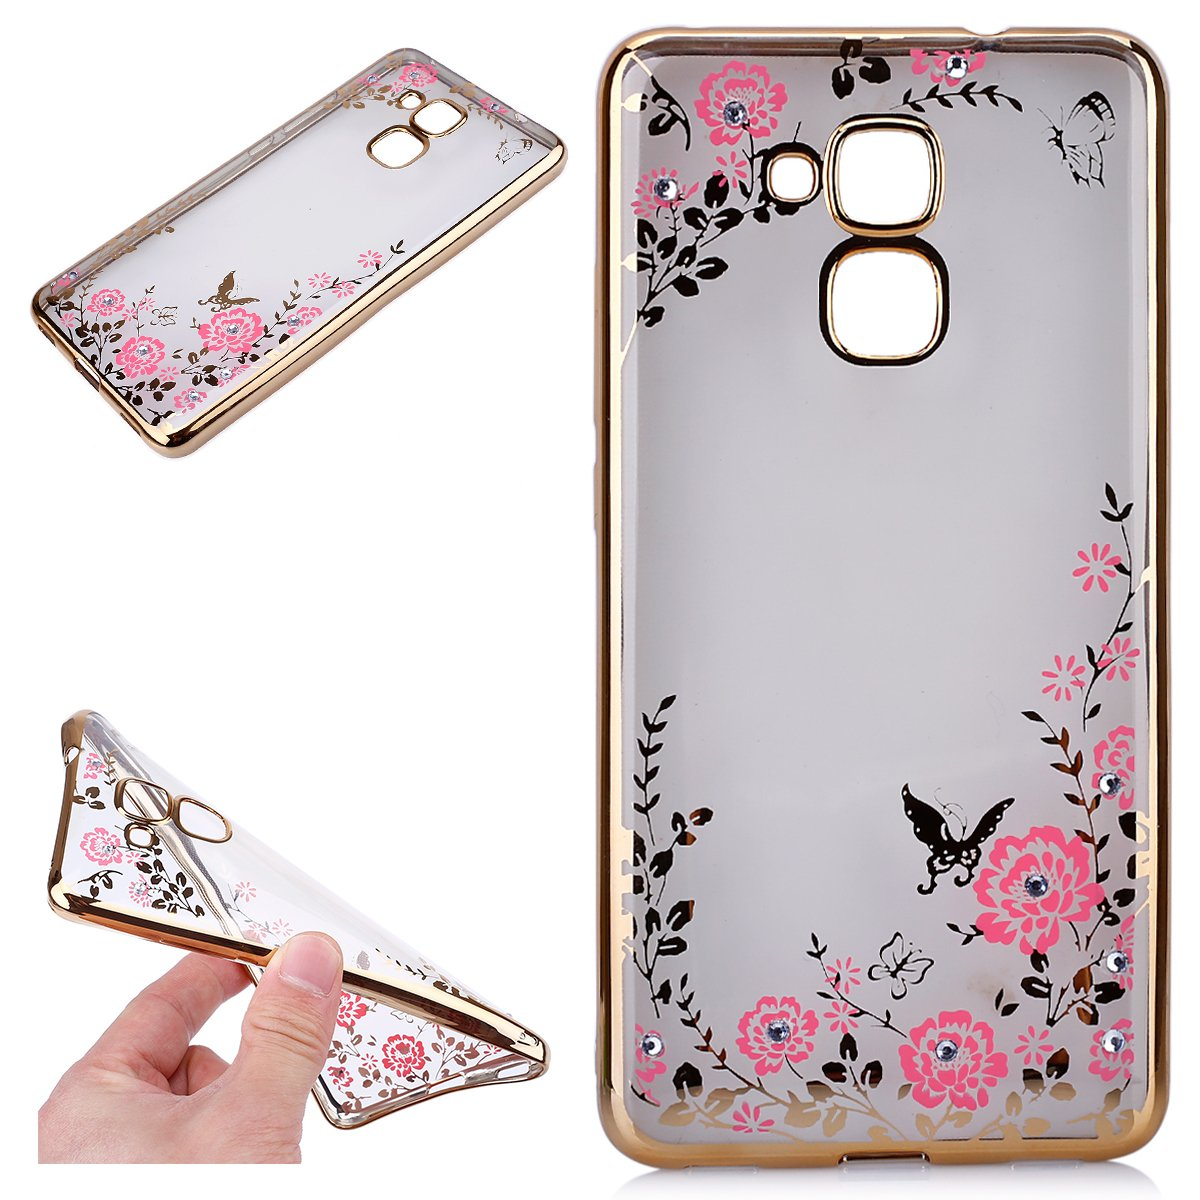 Huawei Honor 5C Coque de protection pour Huawei Honor 7 Lite, Huawei GT3 Bling Diamond Geheimer Jardin Rose Papillon Fleurs Soft TPU Coque de protection Coque de protection Coque de protection Coque de protection Uposao